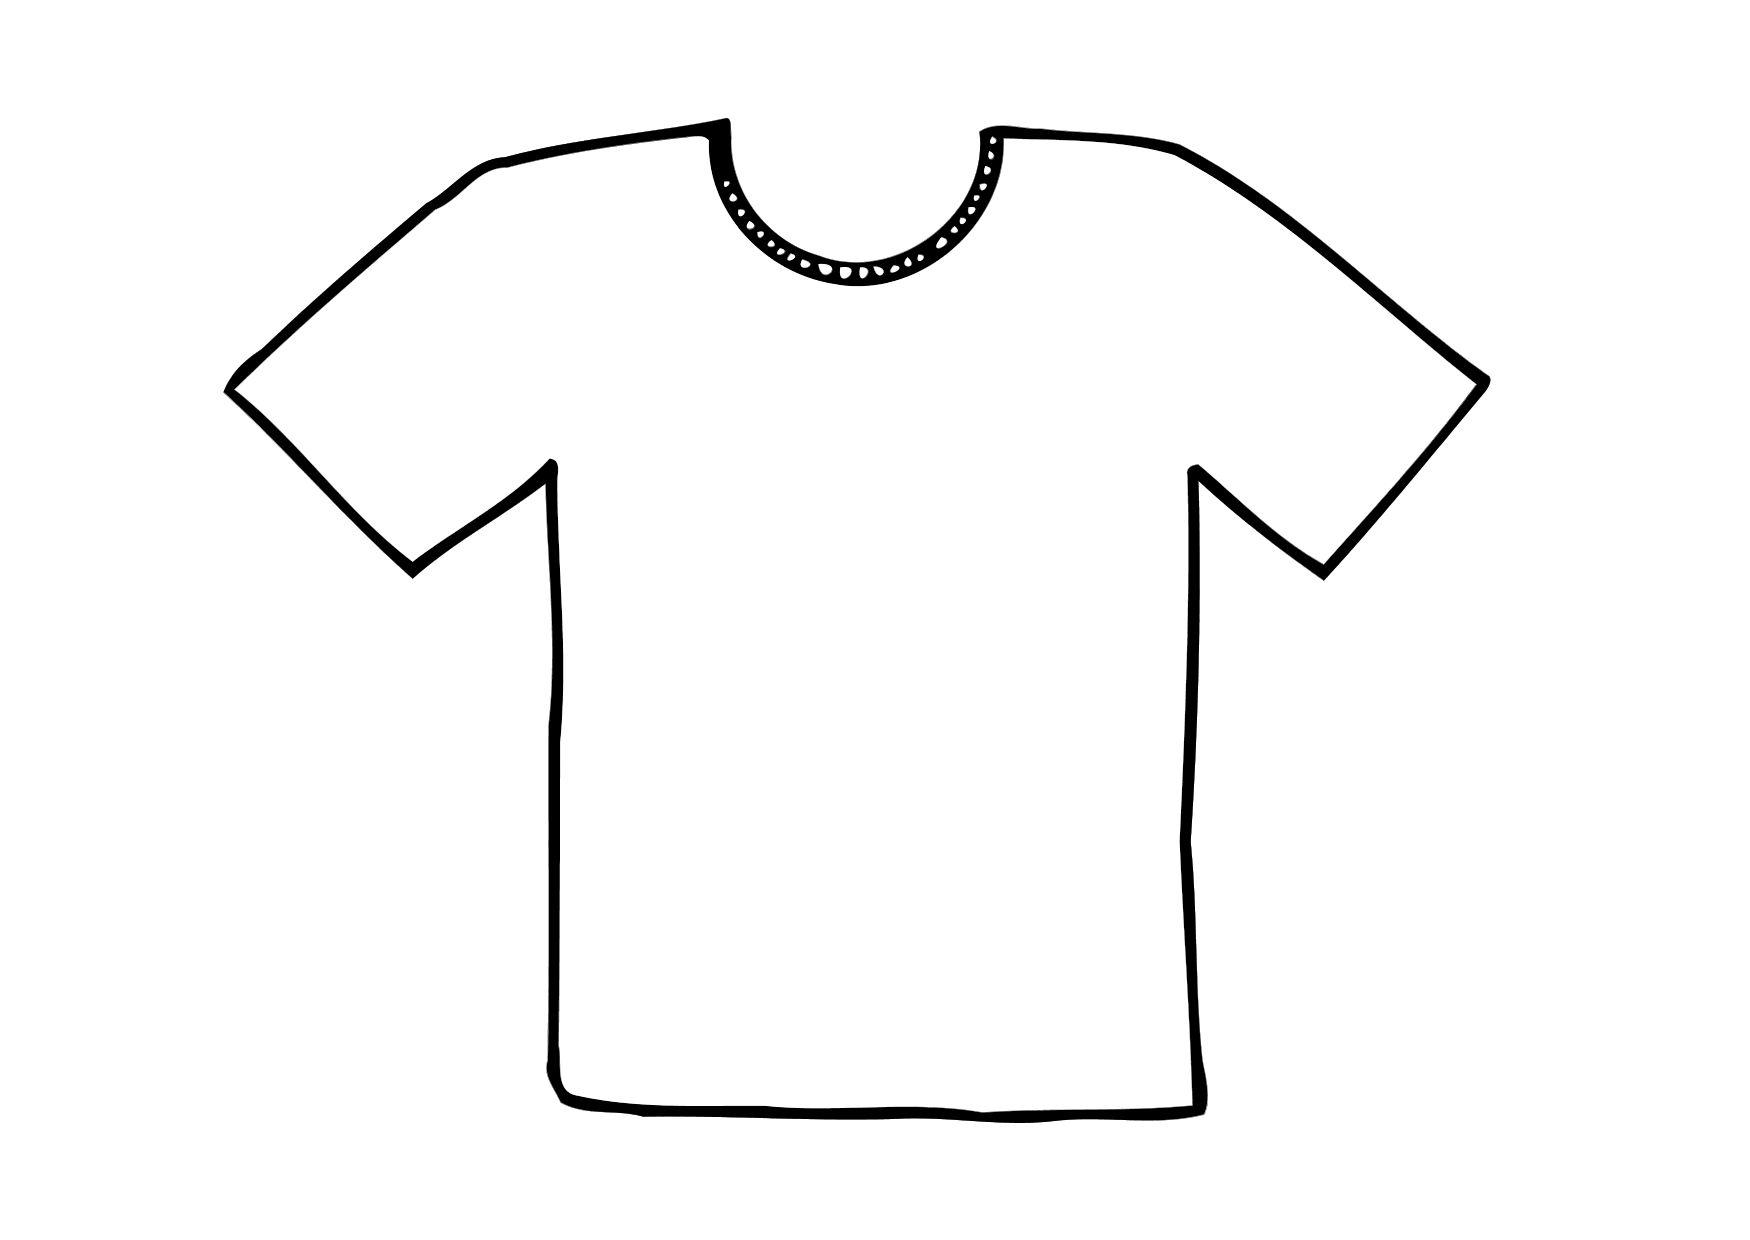 coloring pages of a shirt | Coloring Page t-shirt - free printable coloring pages